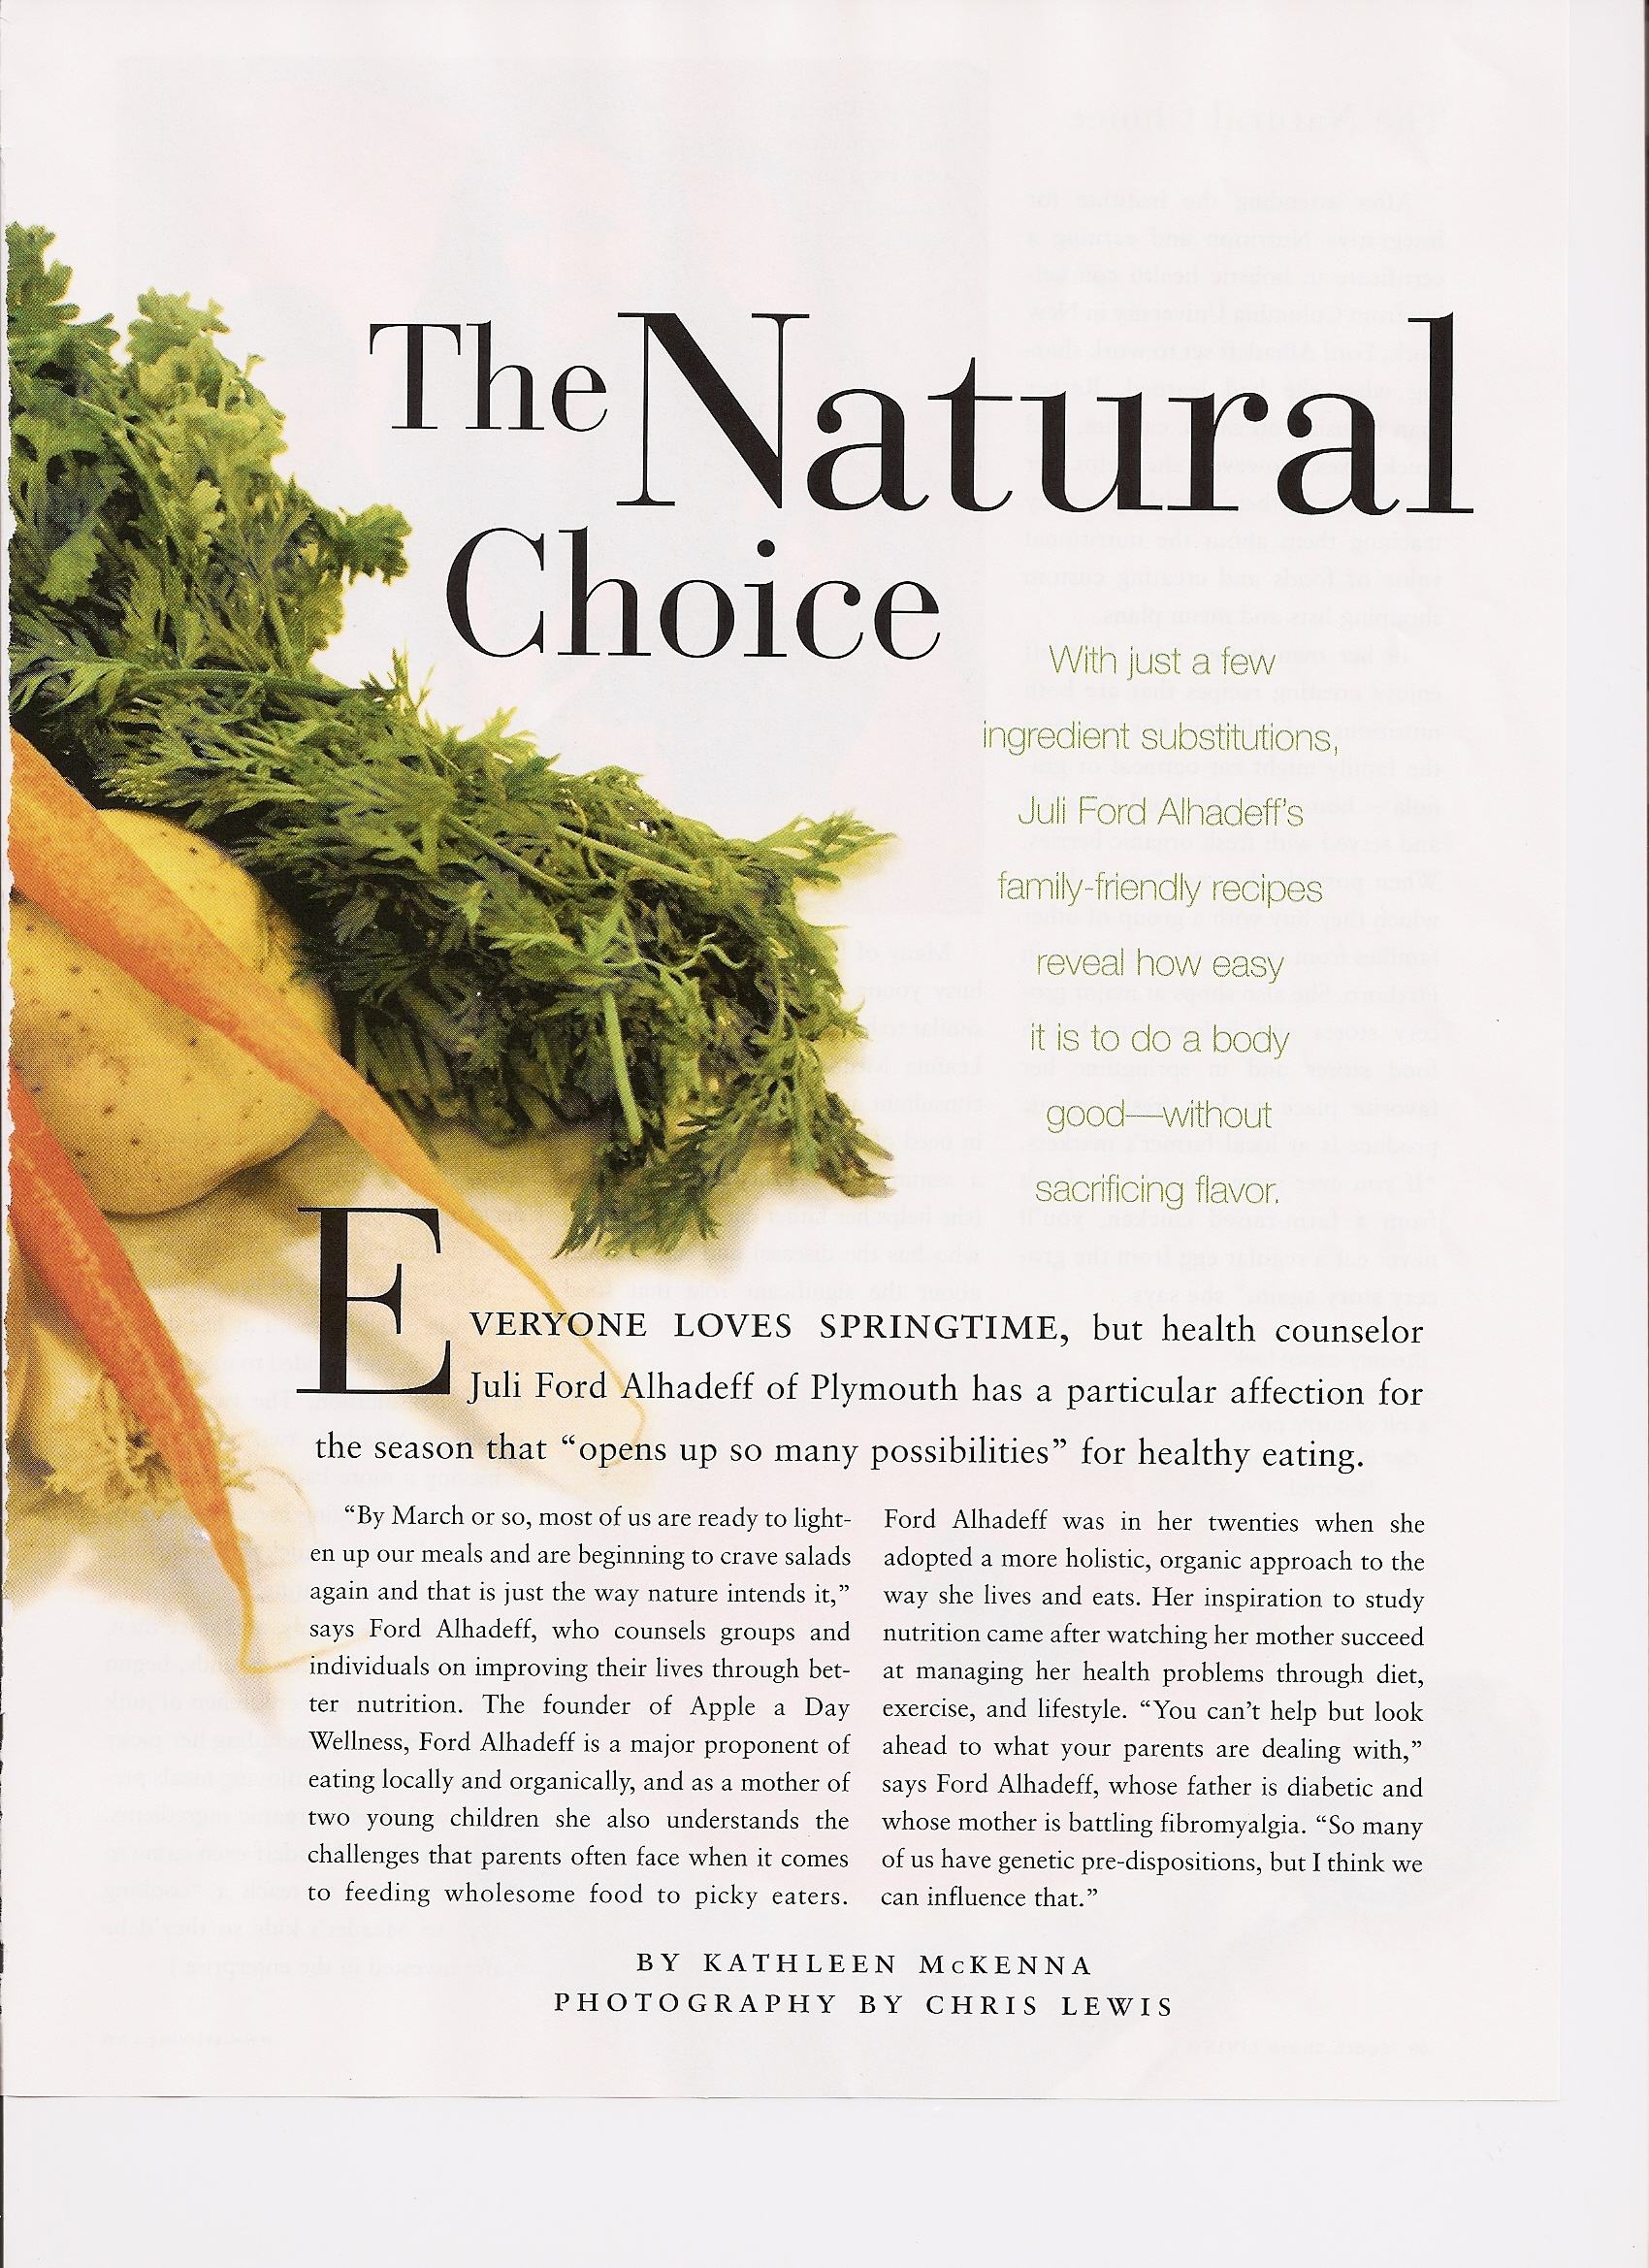 South Shore Living Magazine Article March 2009